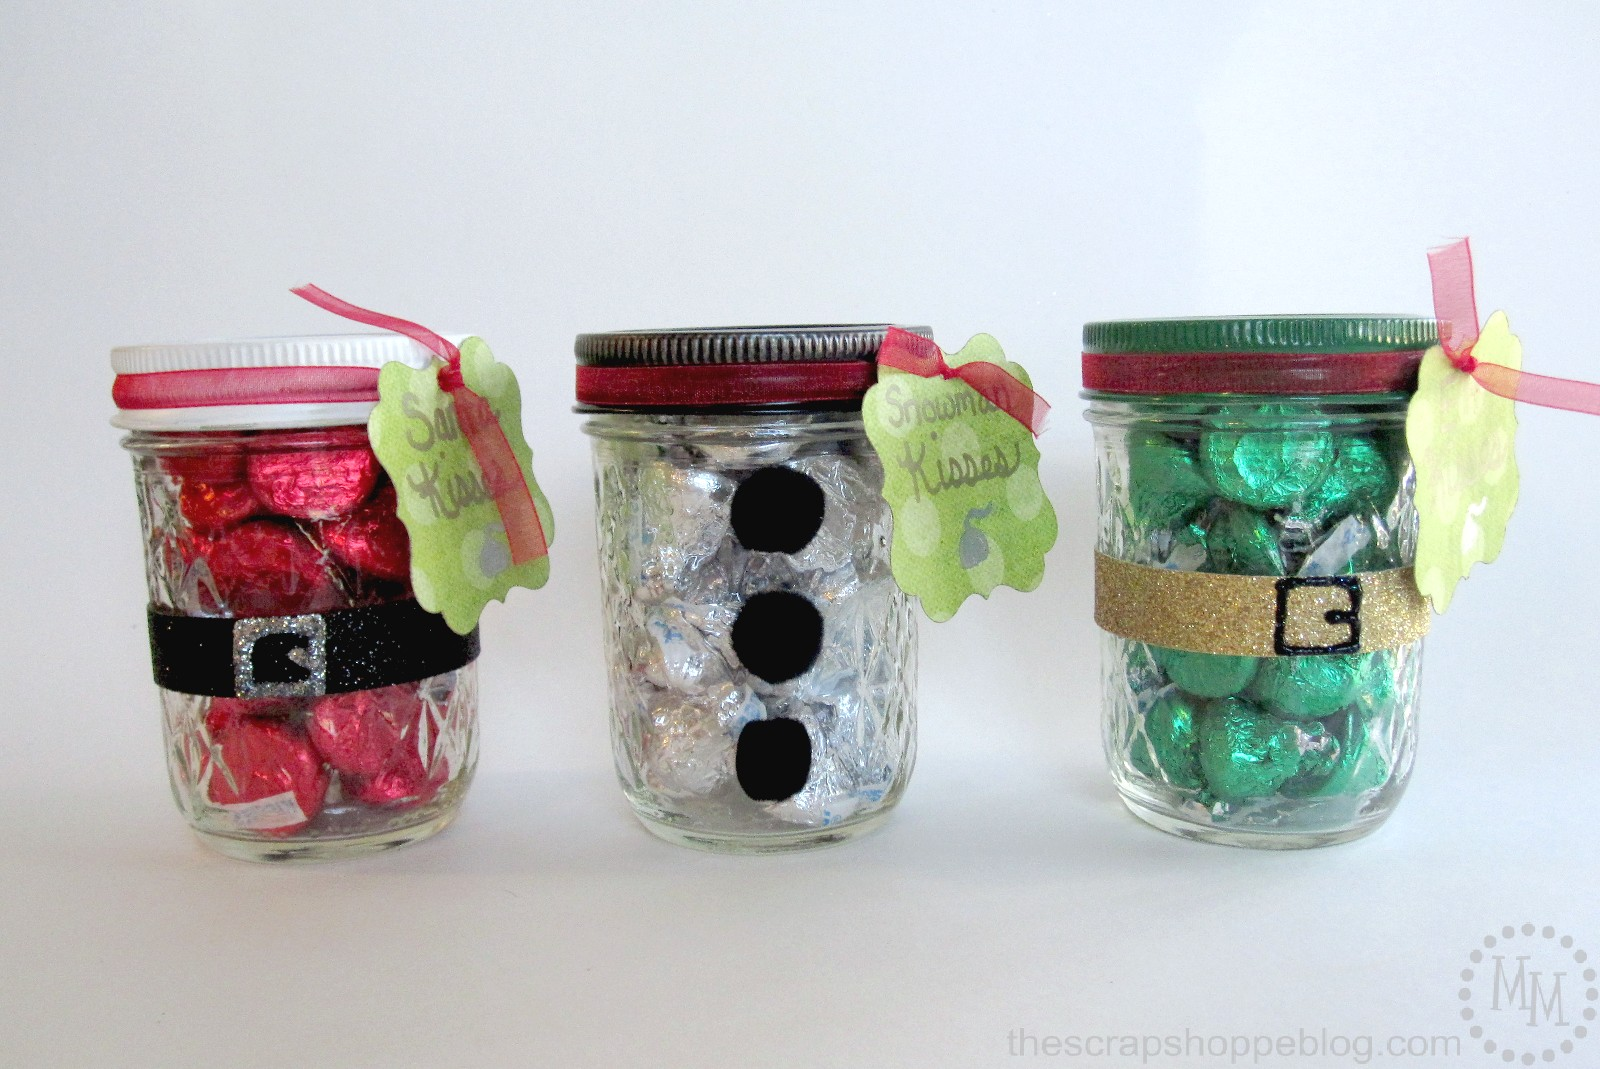 Christmas Kisses Treat Jars - The Scrap Shoppe